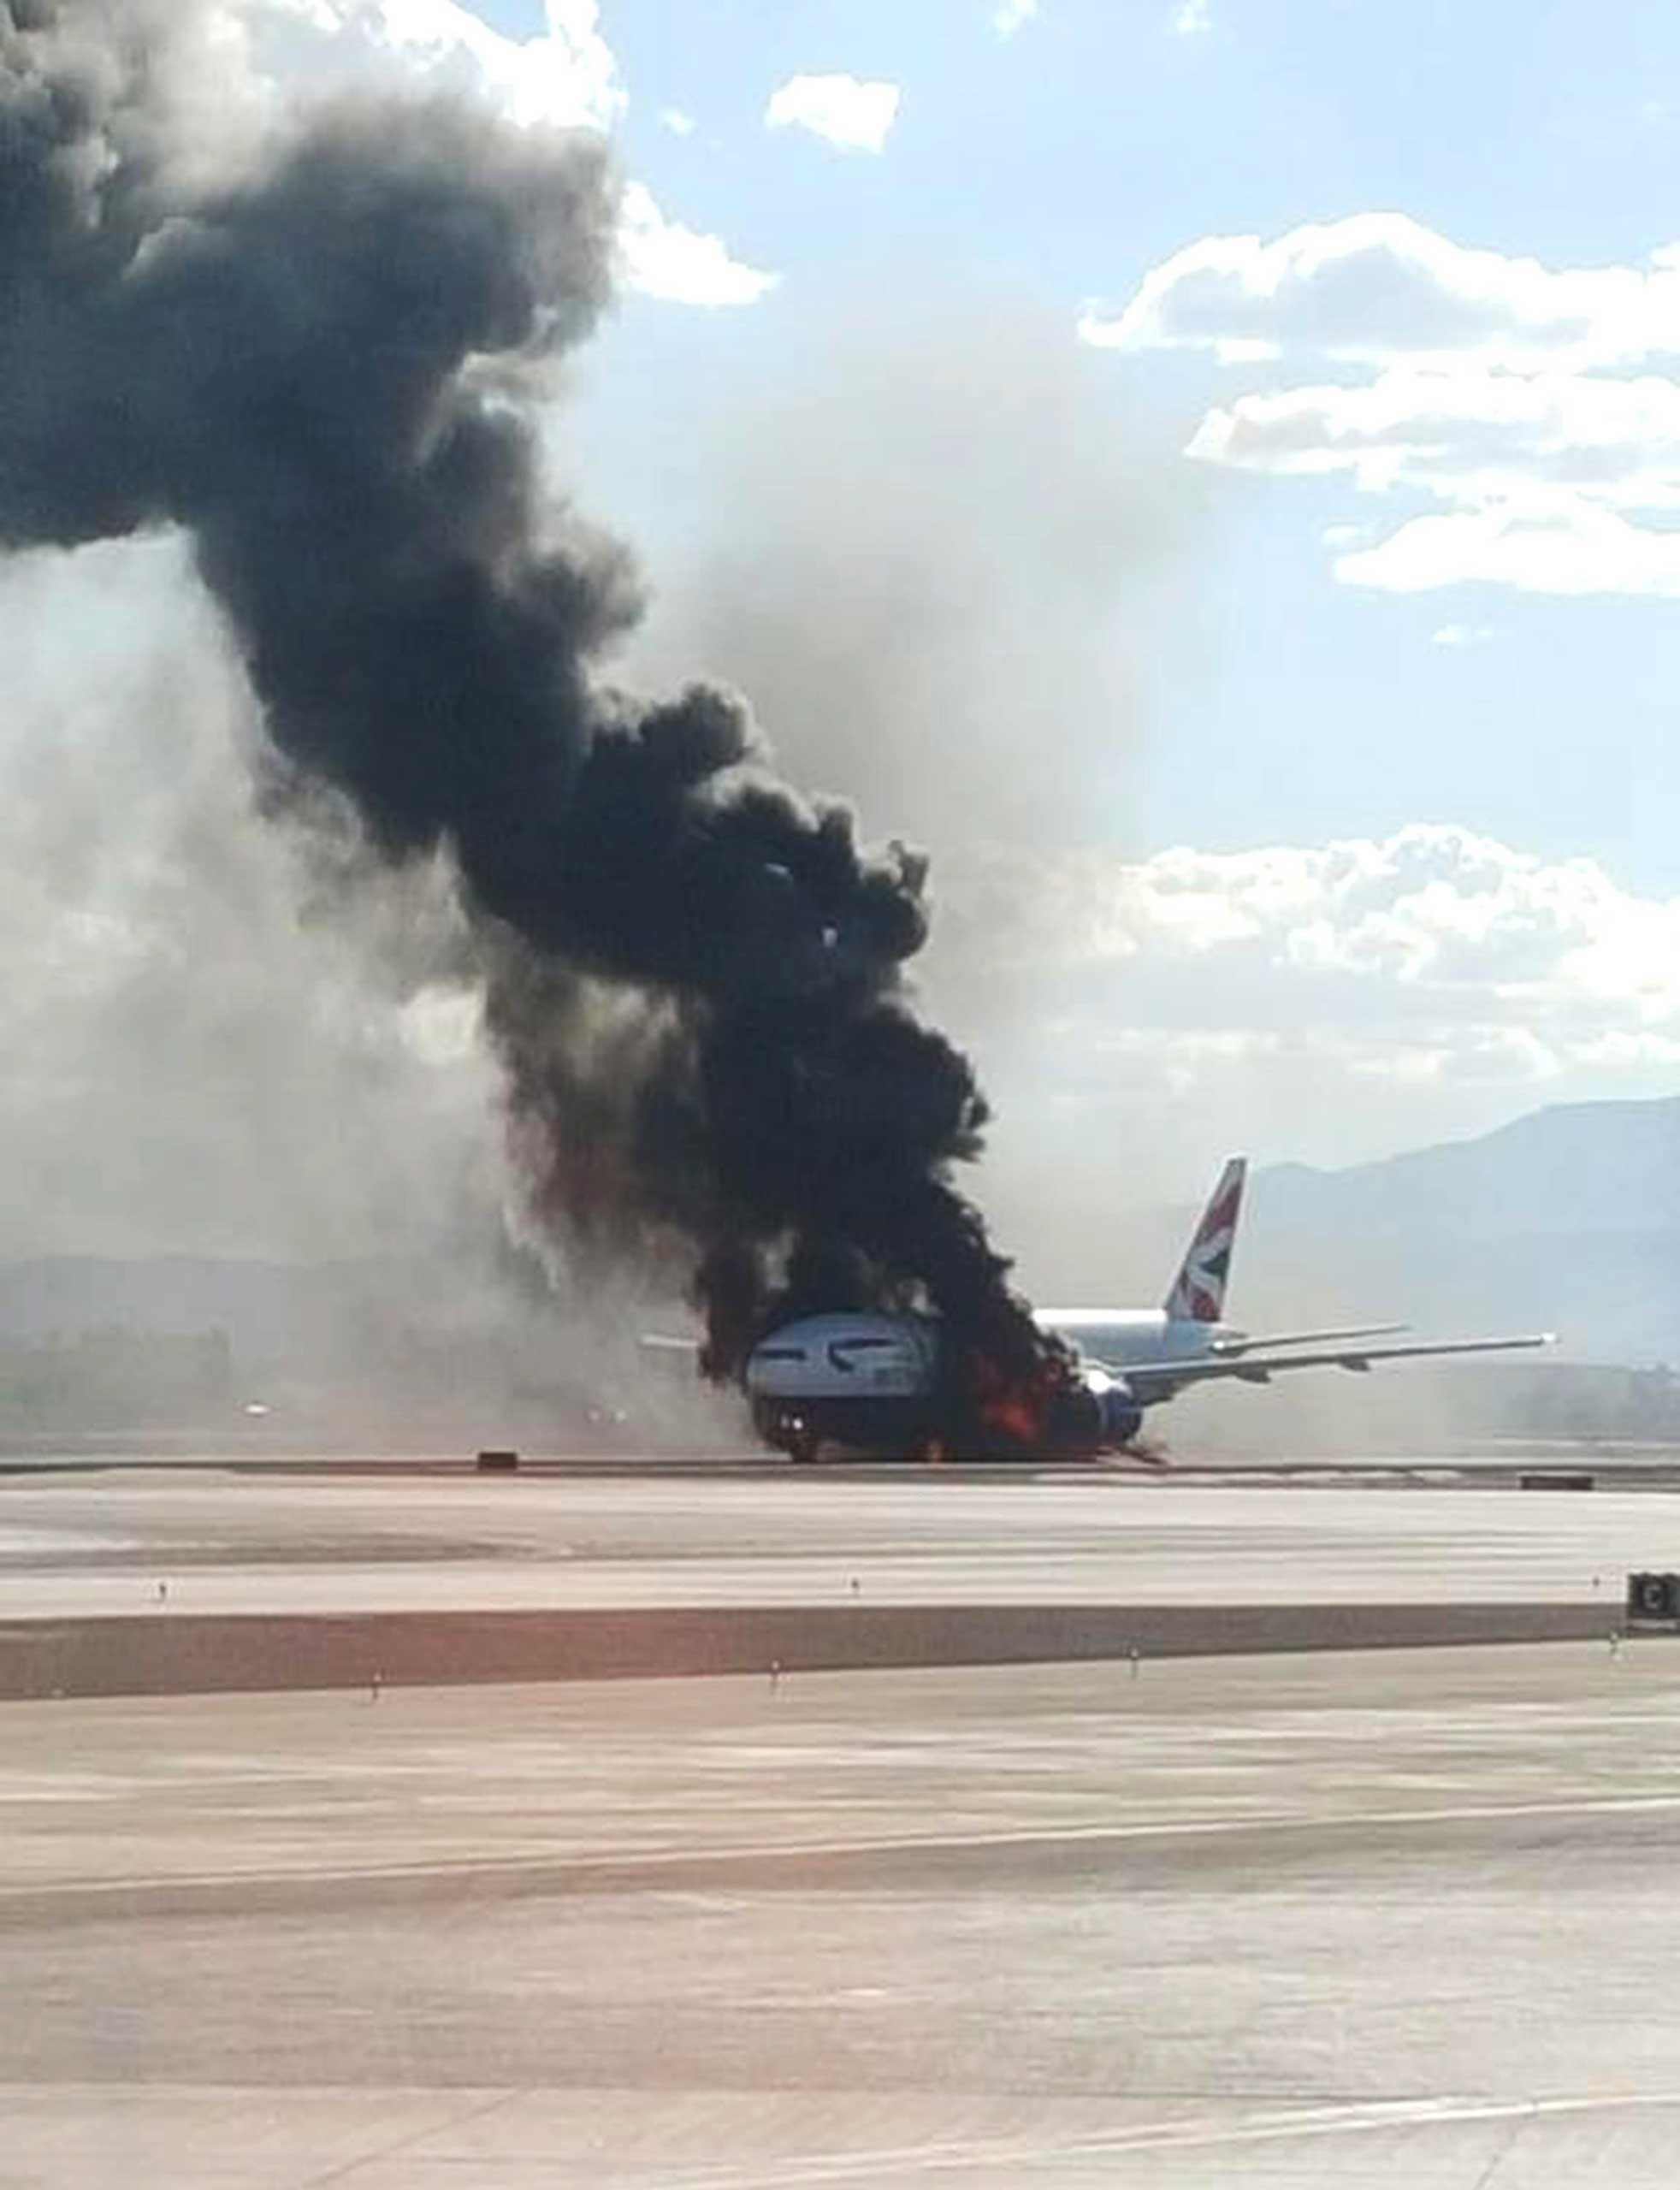 A handout photo from Twitter user Bradley Hampton used with permission shows British Airways flight 2276 en route to London's Gatwick Airport on fire at McCarran International Airport in Las Vegas, on Sept. 8, 2015.